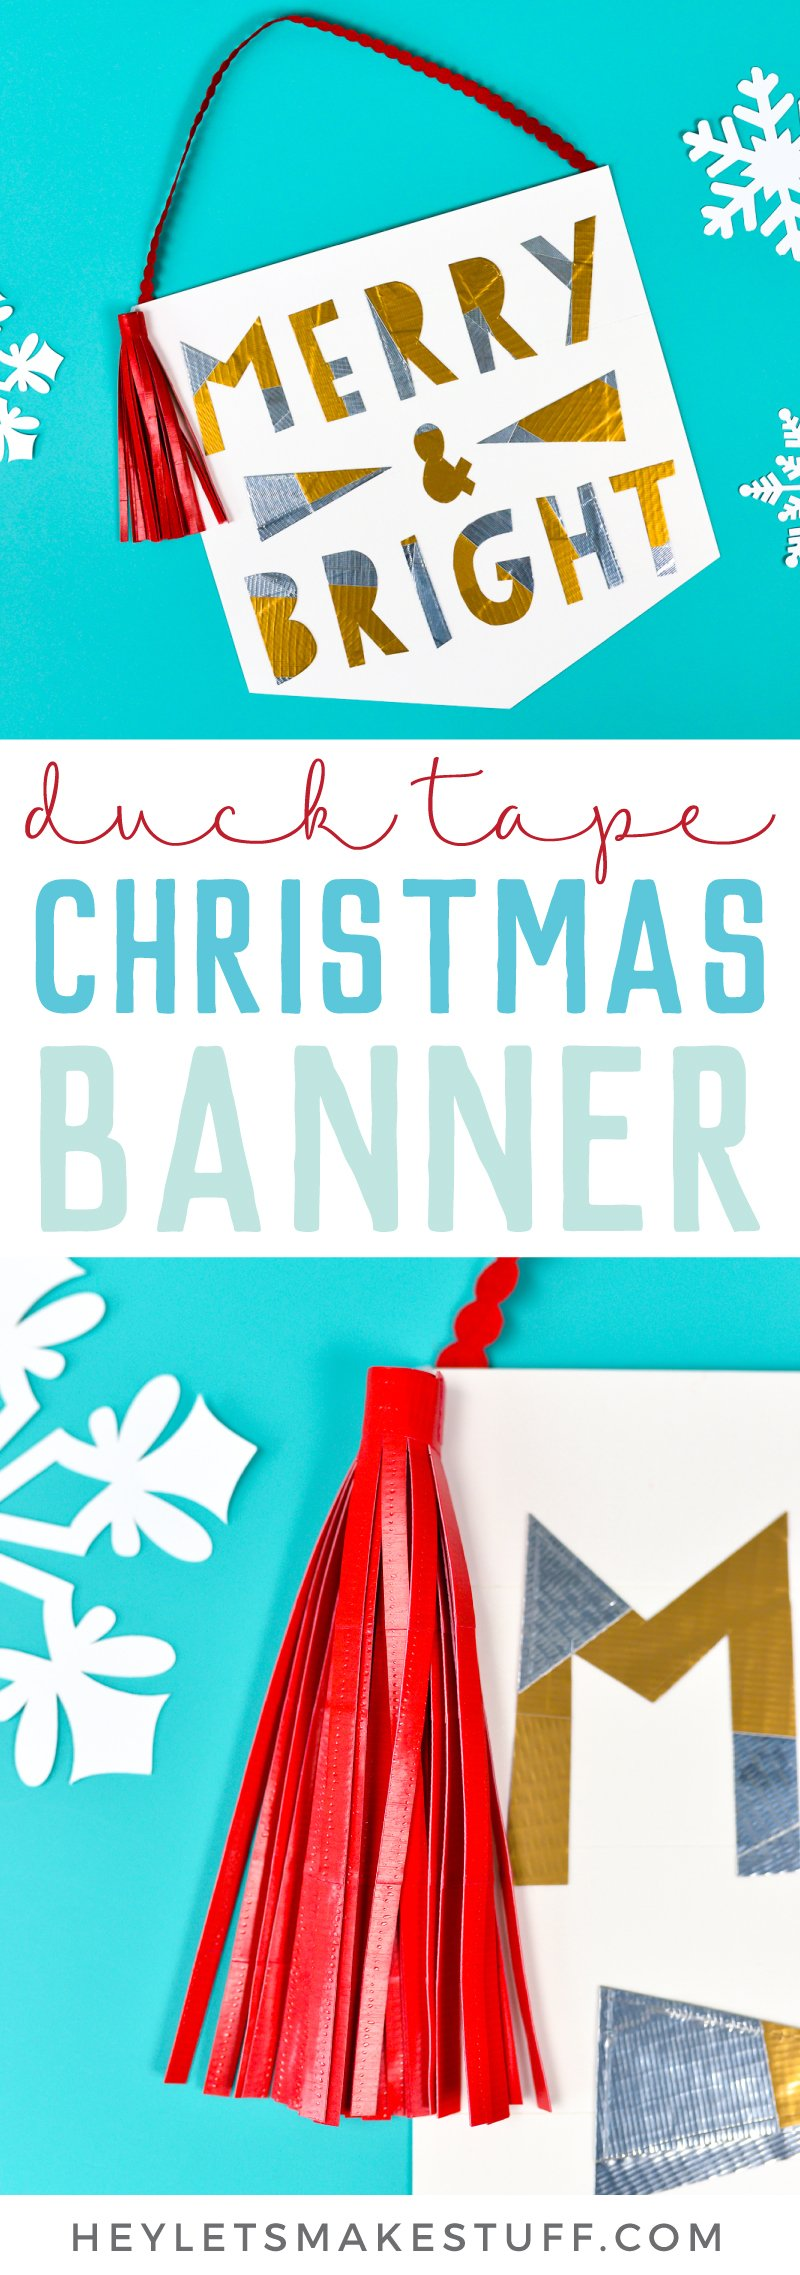 Get creative with Duck Tape® to make this cute DIY Christmas banner! Includes instructions for making the banner, letters, and tassels—all with Duck Tape!